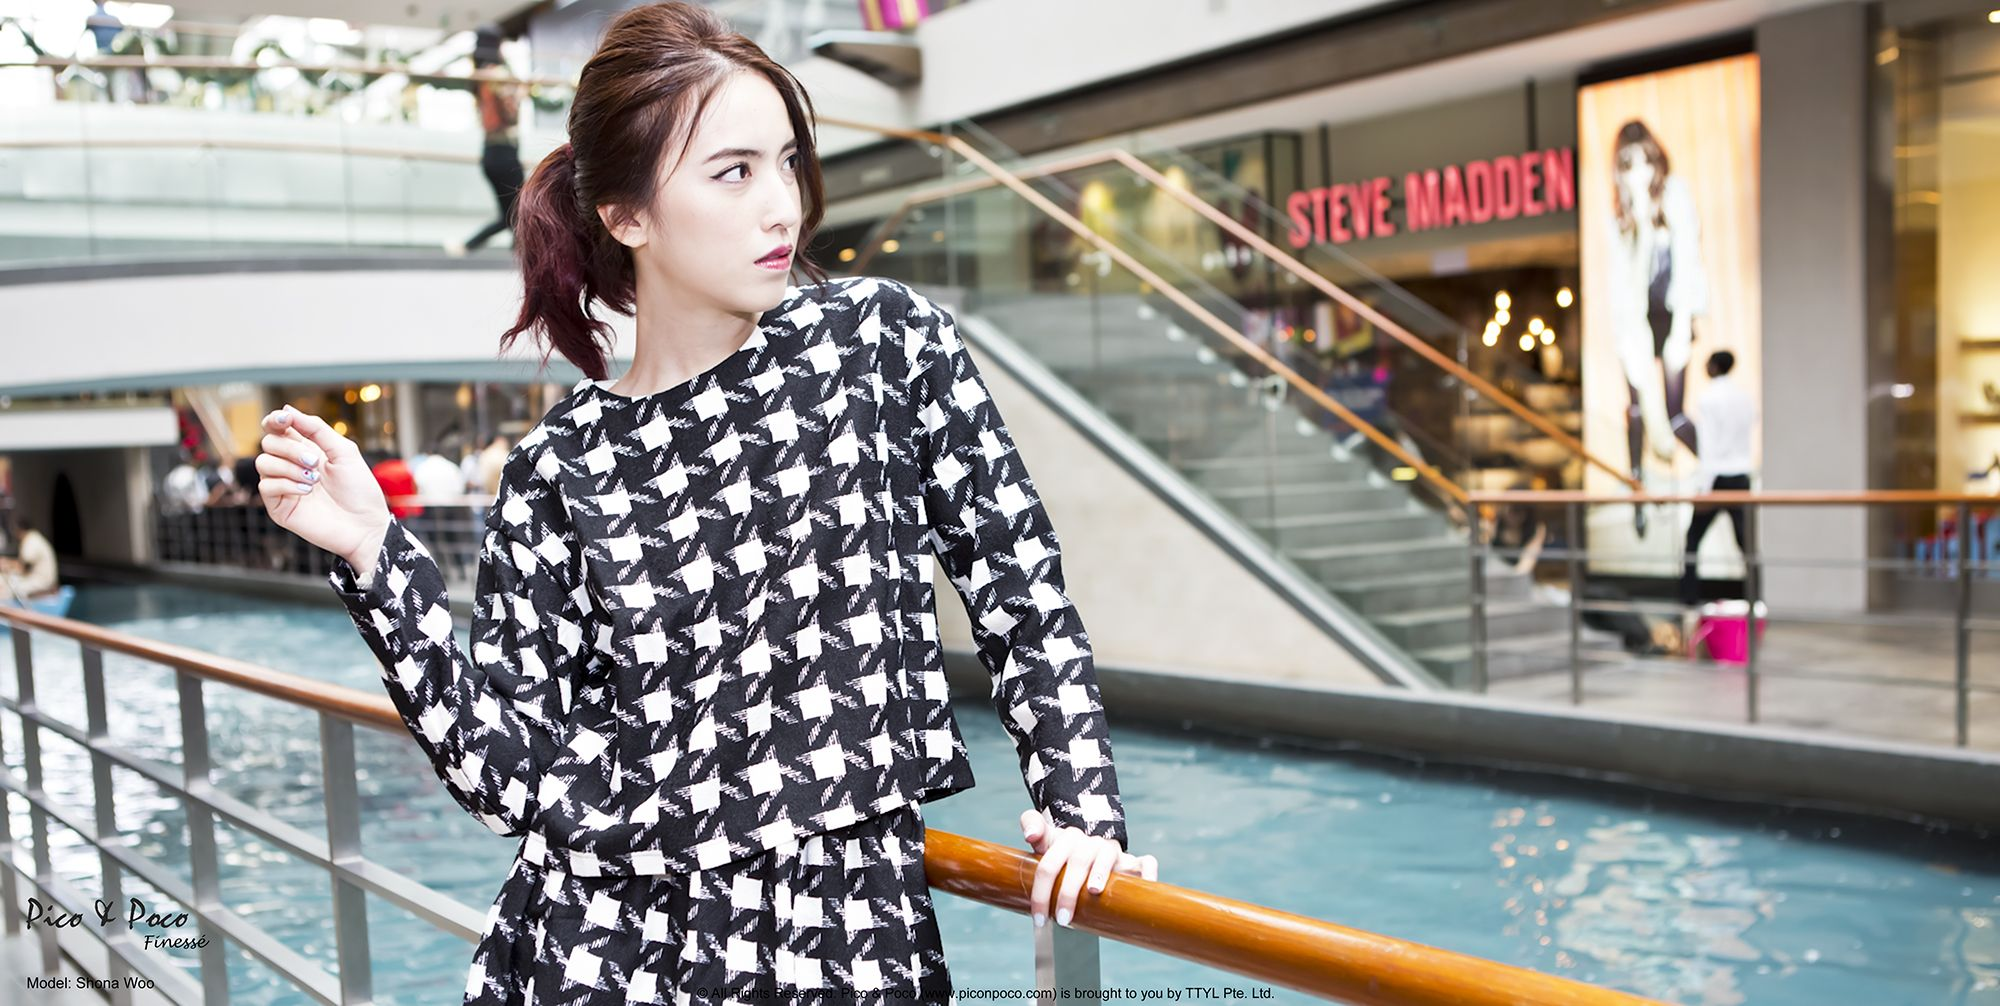 Black and white checkeredmatching long-sleeved top and skirt